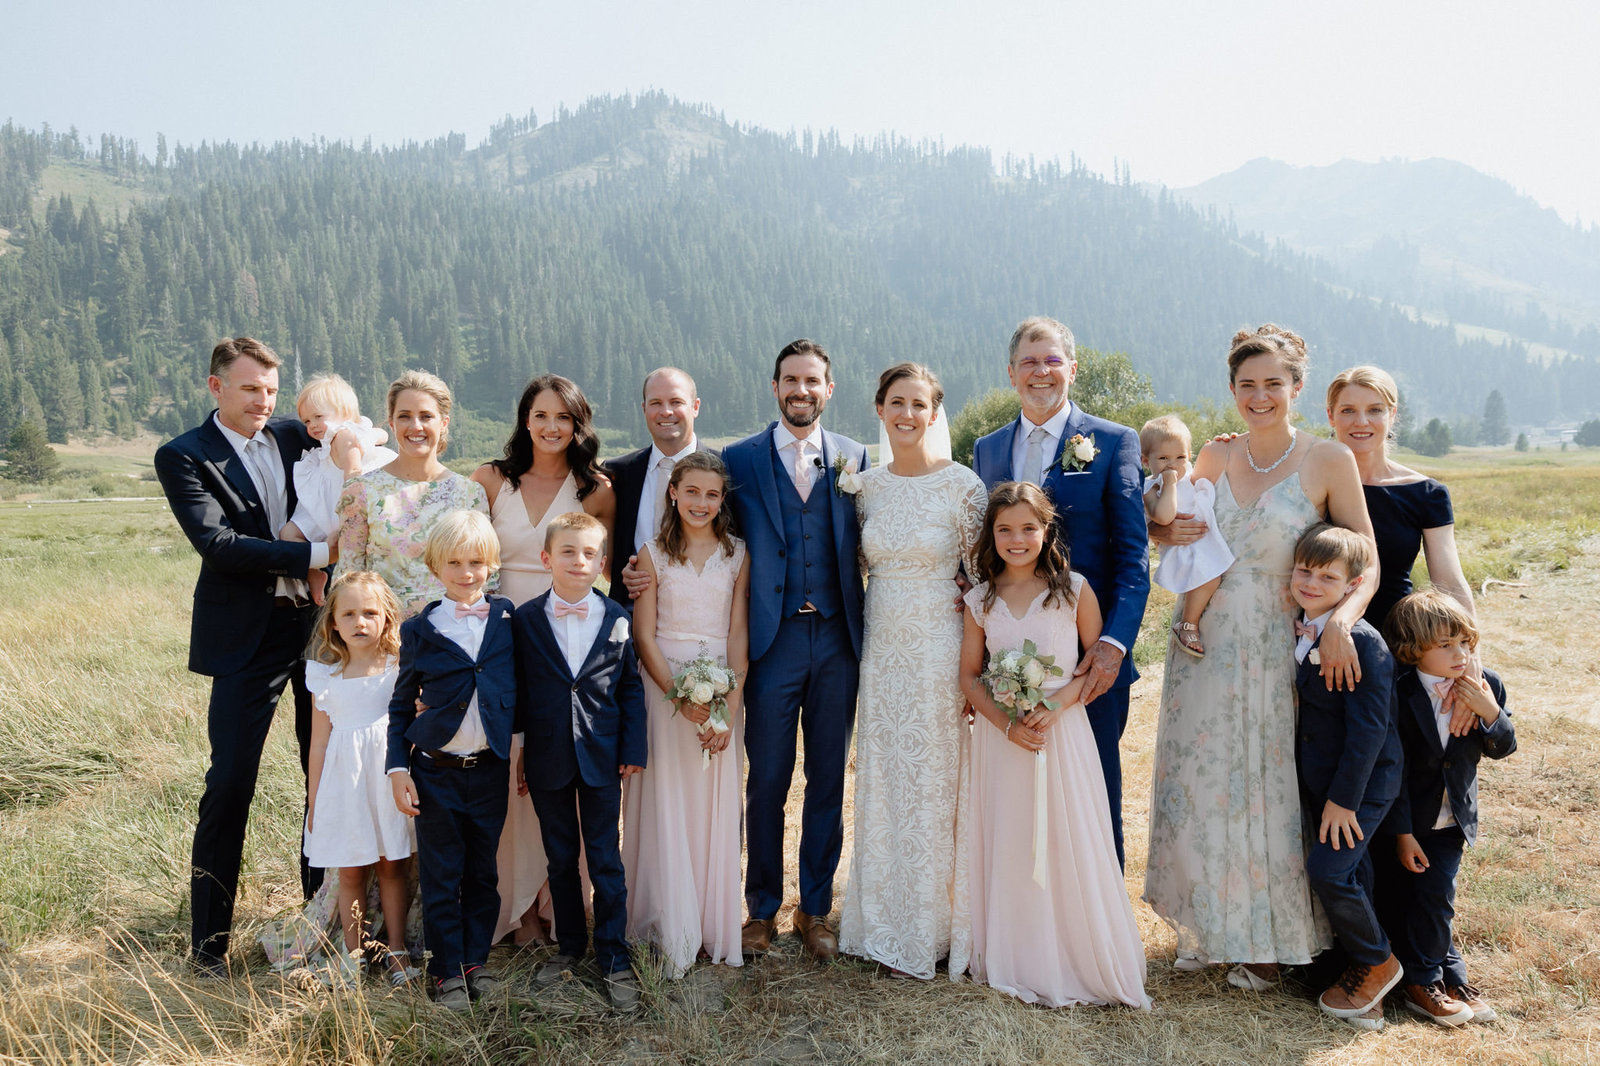 squaw-valley-stables-wedding-marble-rye-photography-familyandfriends-089